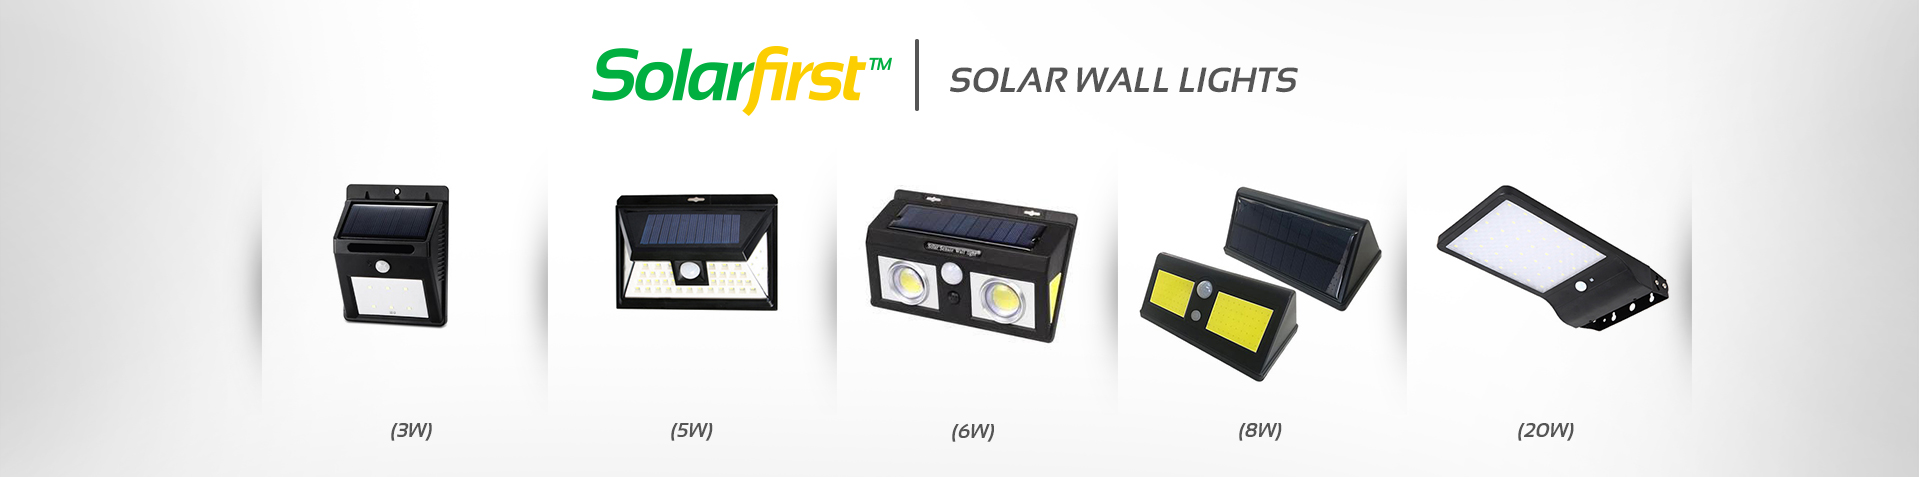 Solar-Wall-Lights1.1